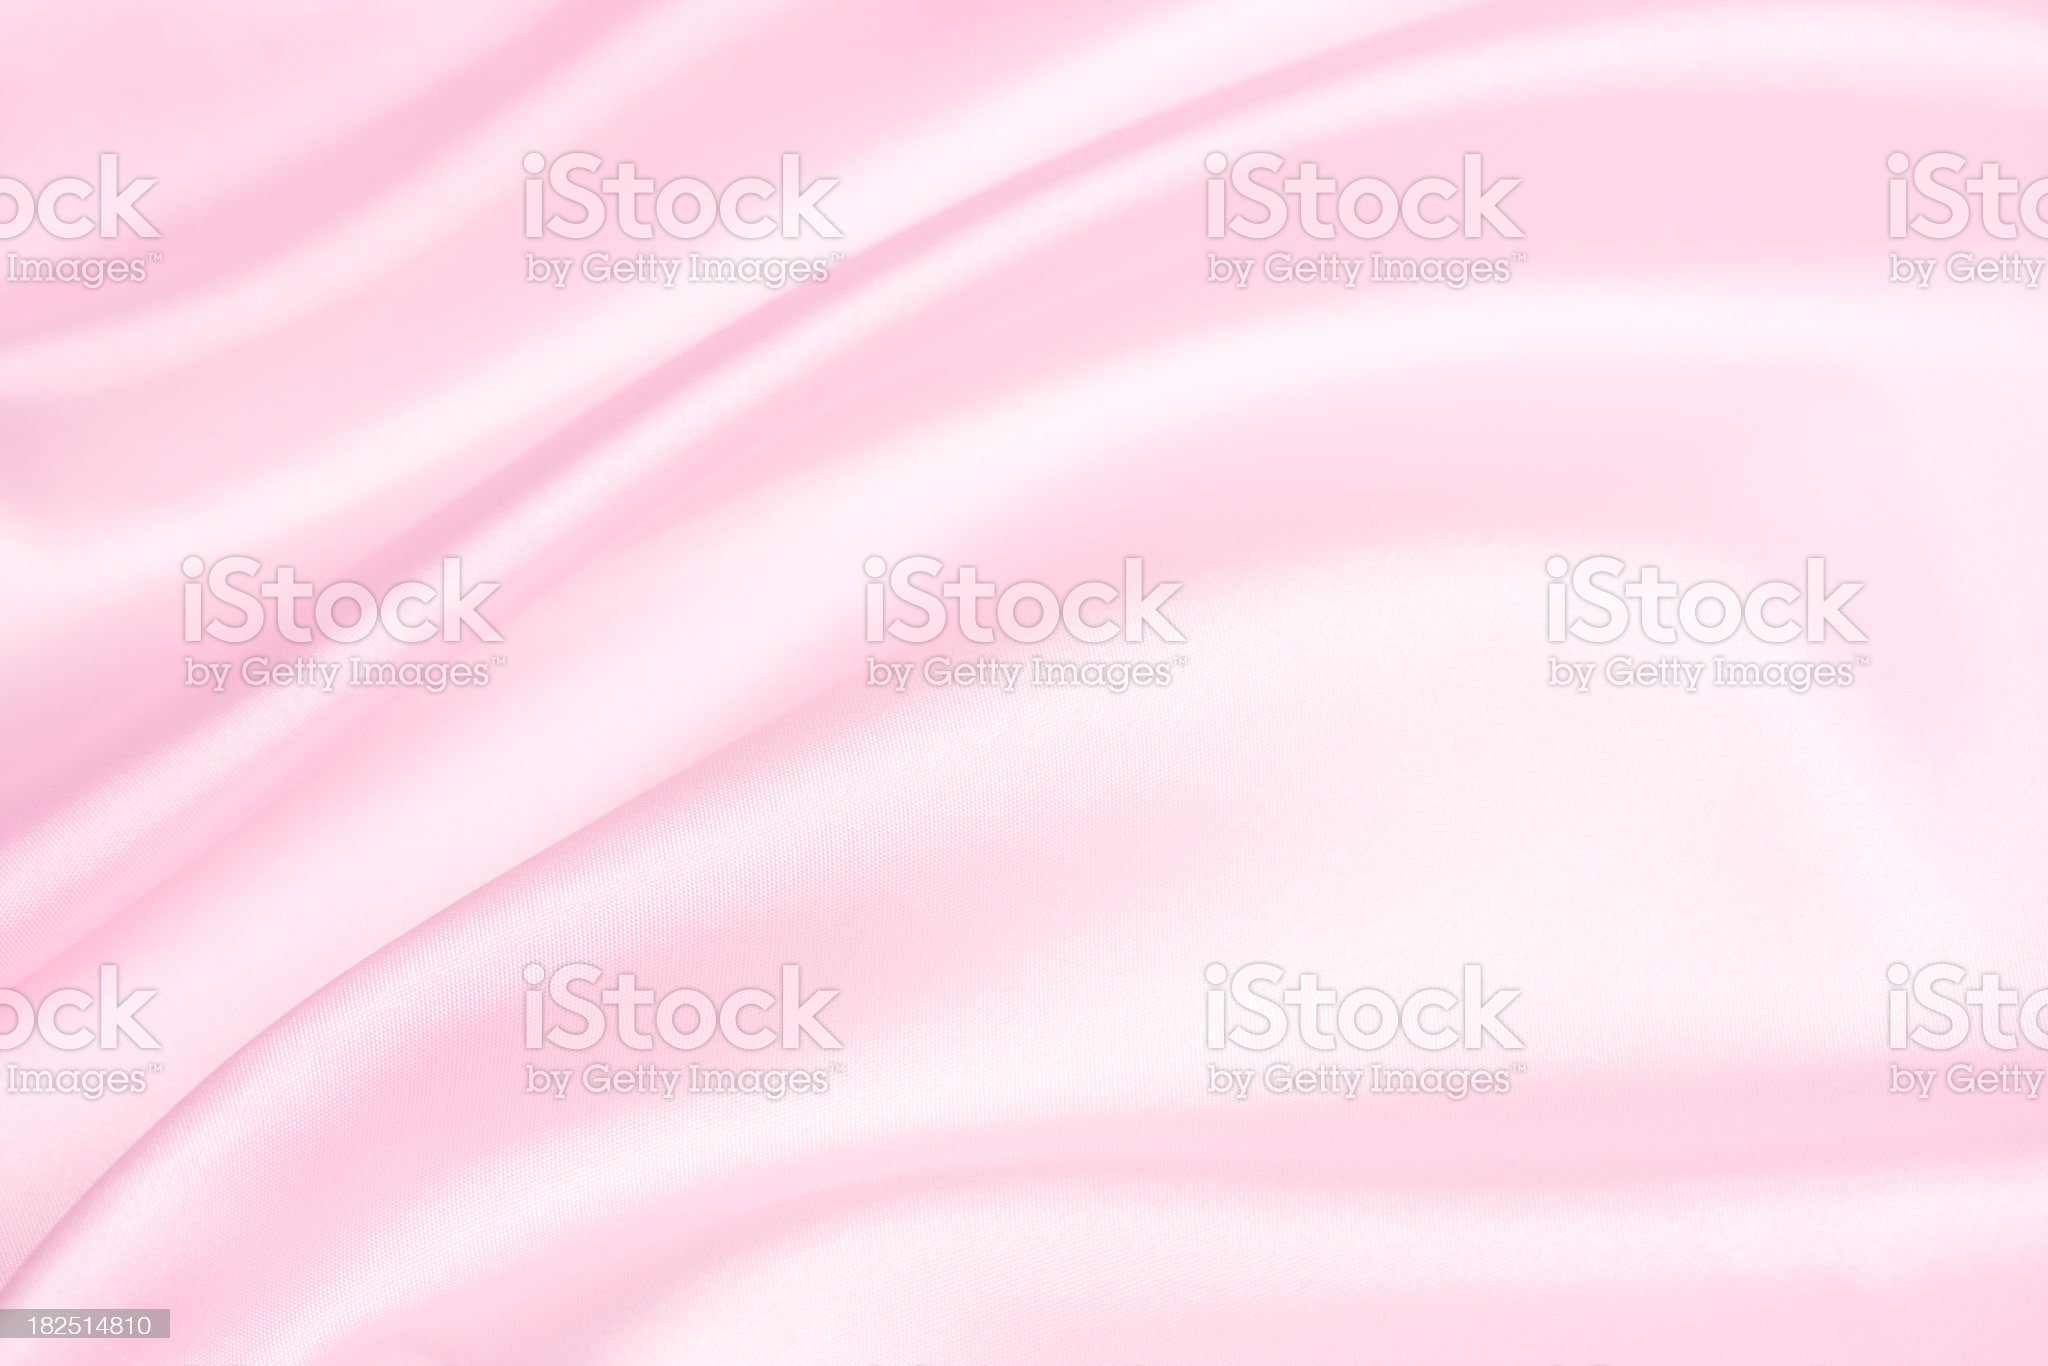 Background image of pink satin royalty-free stock photo